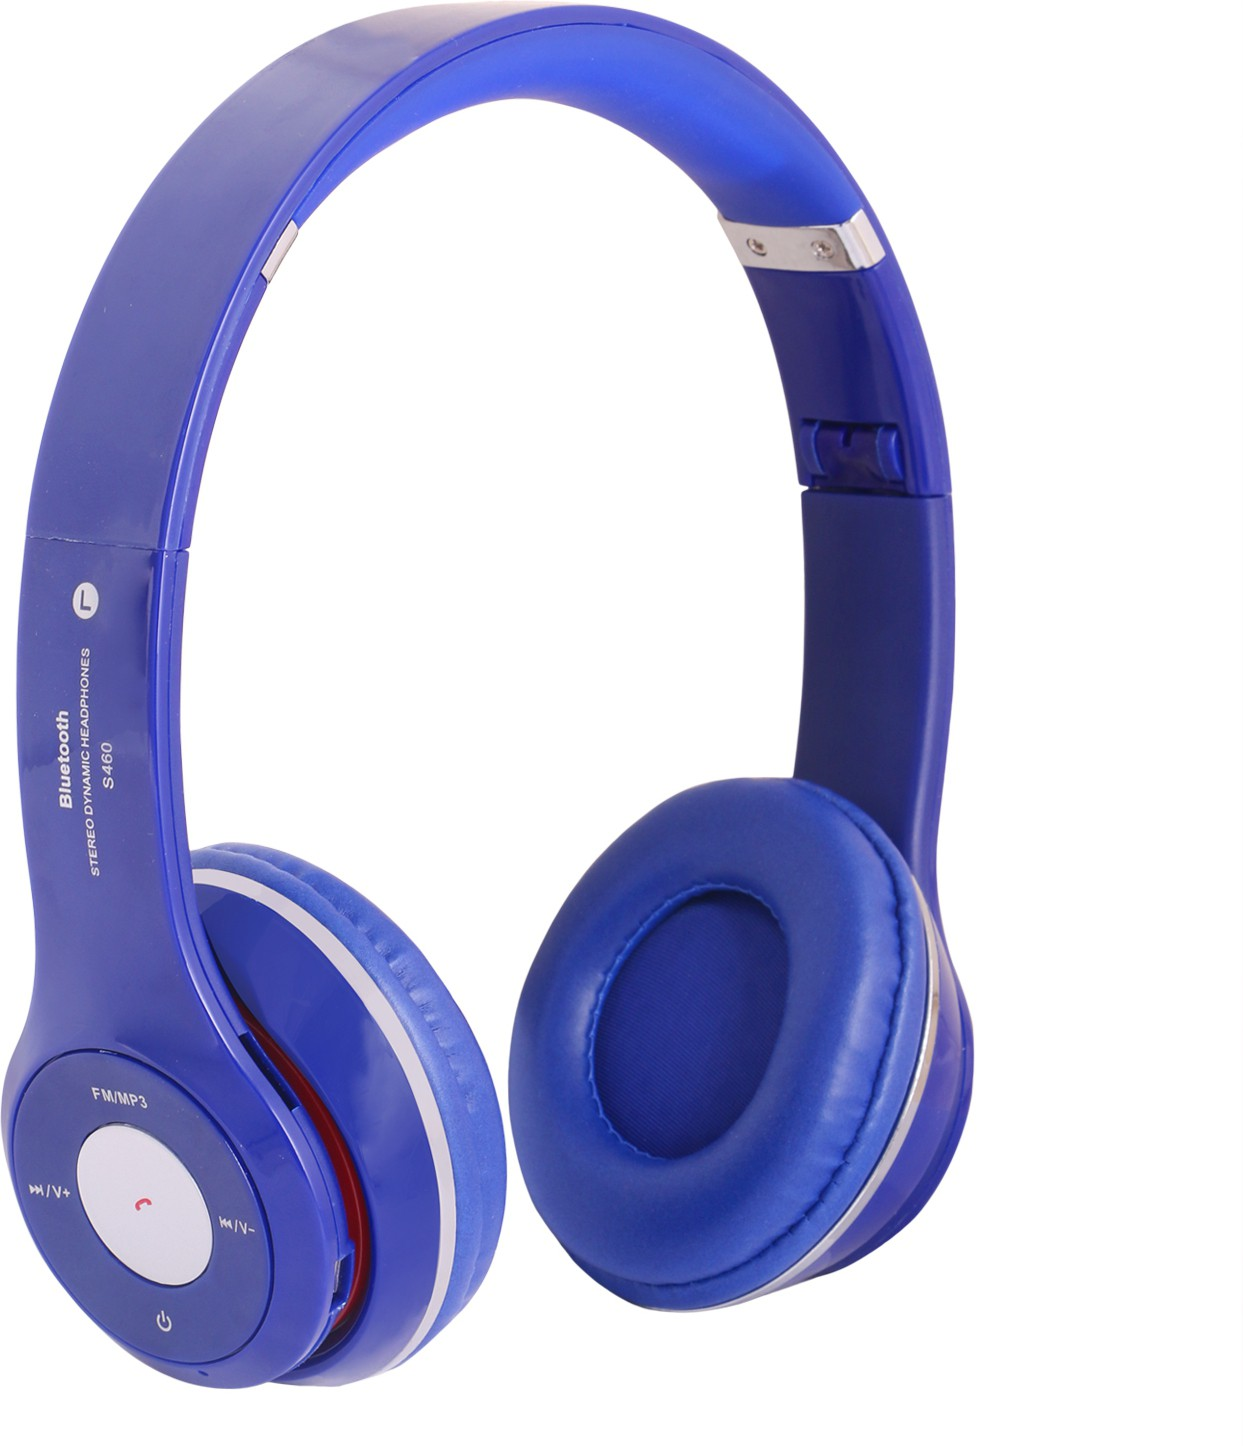 REJUVENATE S460 WIRED & WIRELESS Wired & Wireless Bluetooth Gaming Headset With Mic(Blue)